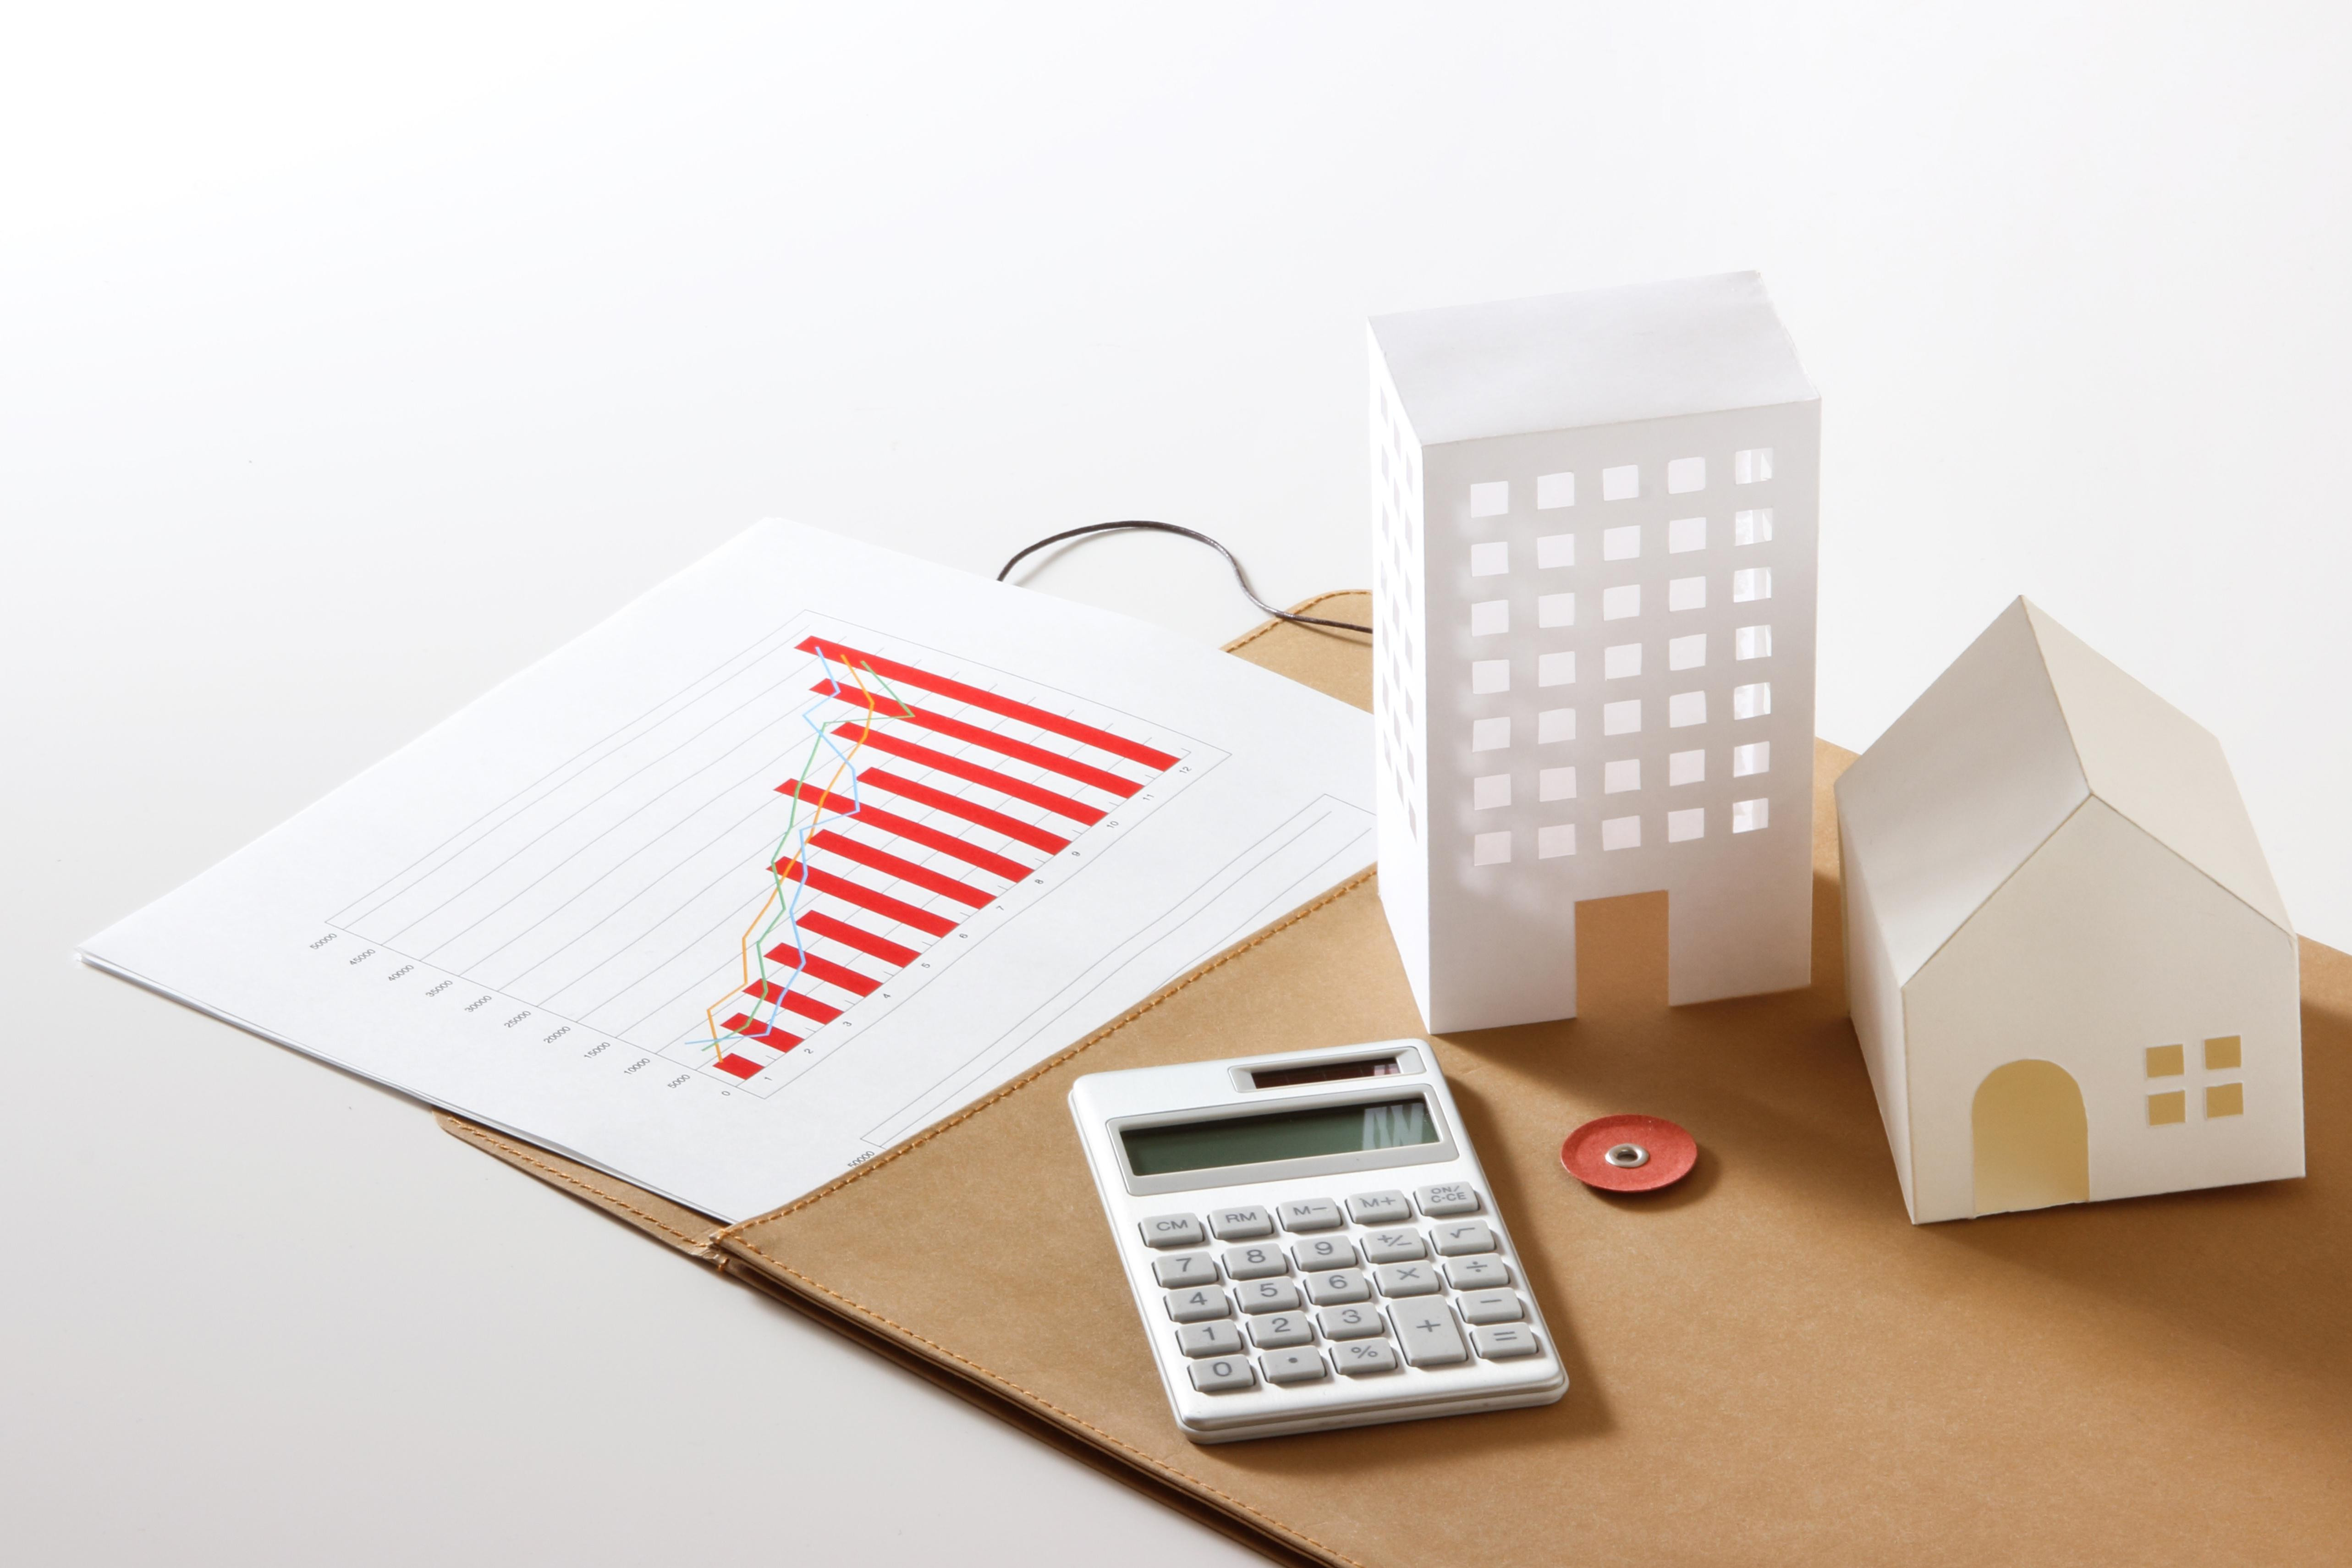 U.S. Housing Supply: Obstacles And Opportunities